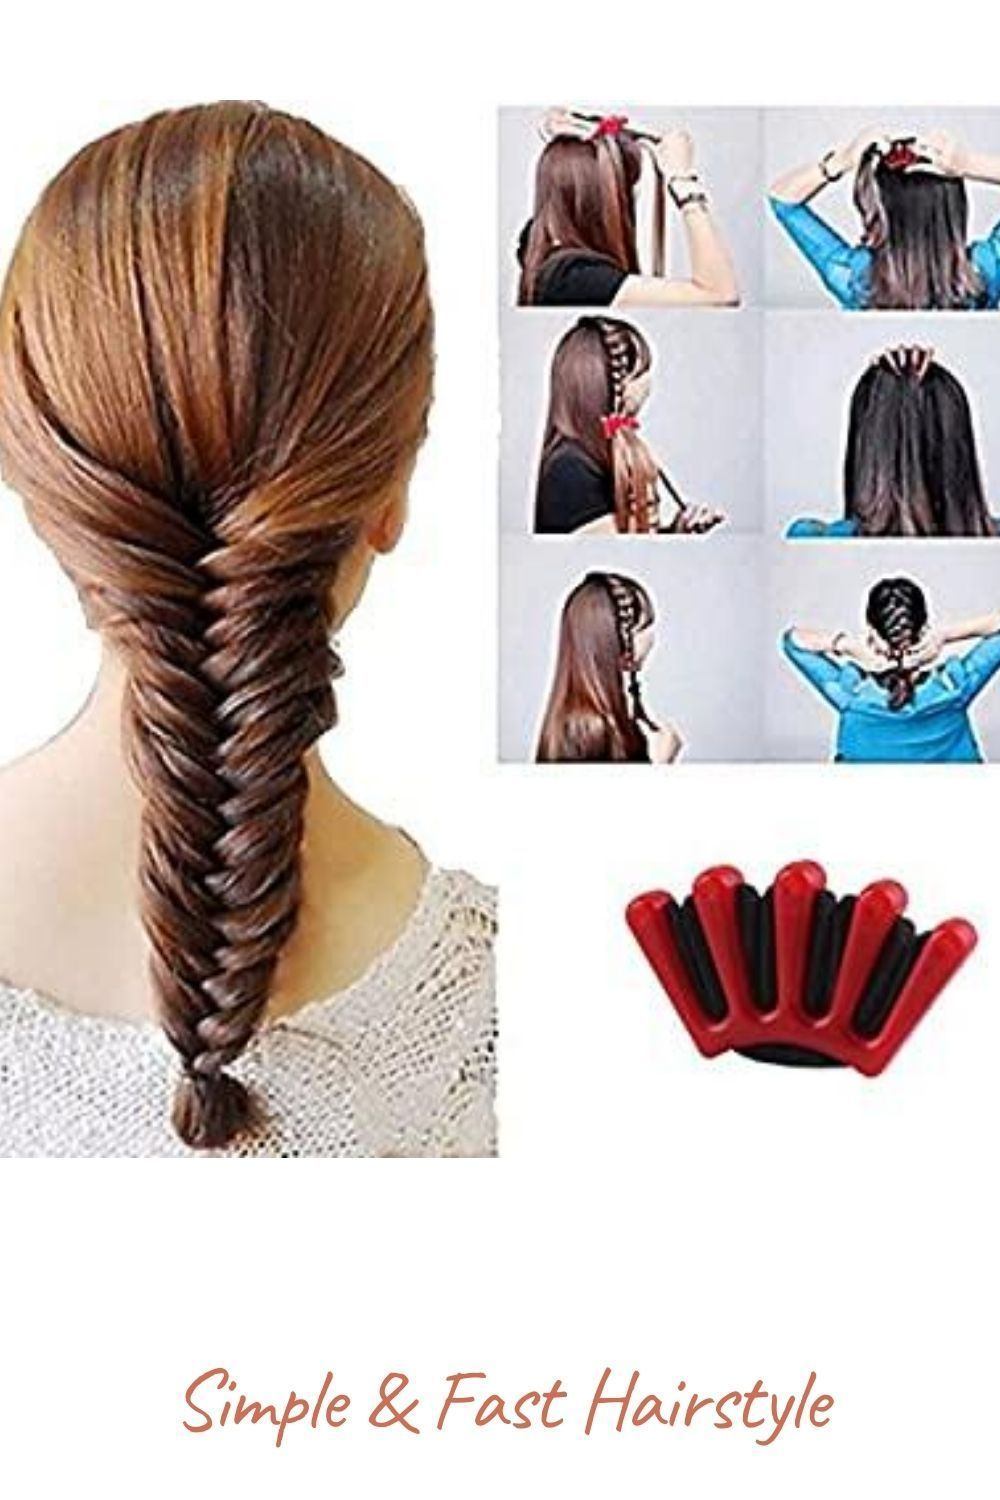 Simple Fast Hairstyle In 2020 Hair Braiding Tool Hair Styles Hair Braider Tool